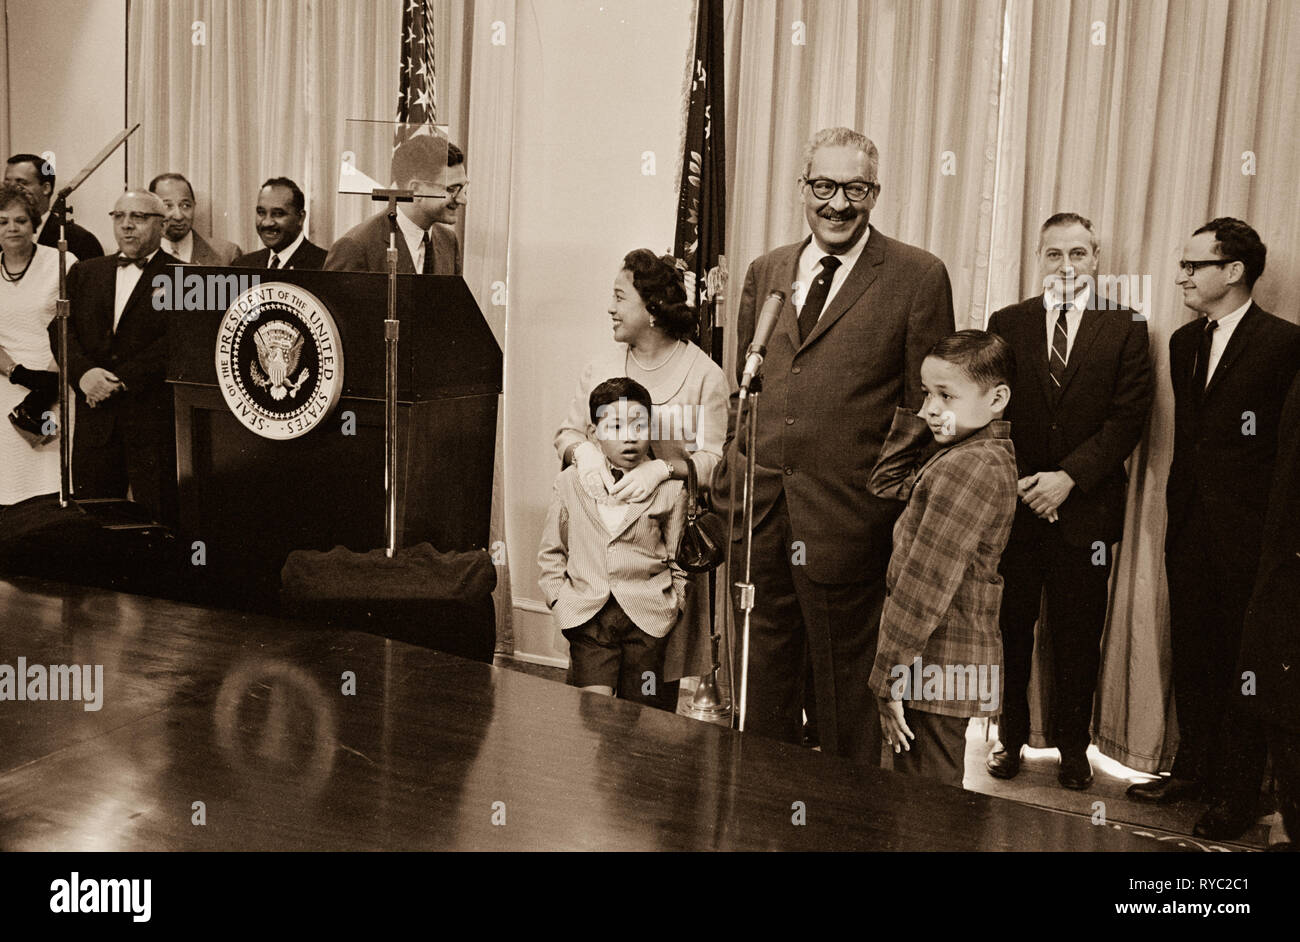 Thurgood Marshall sworn in as United States Solicitor General by President John F. Kennedy - Stock Image